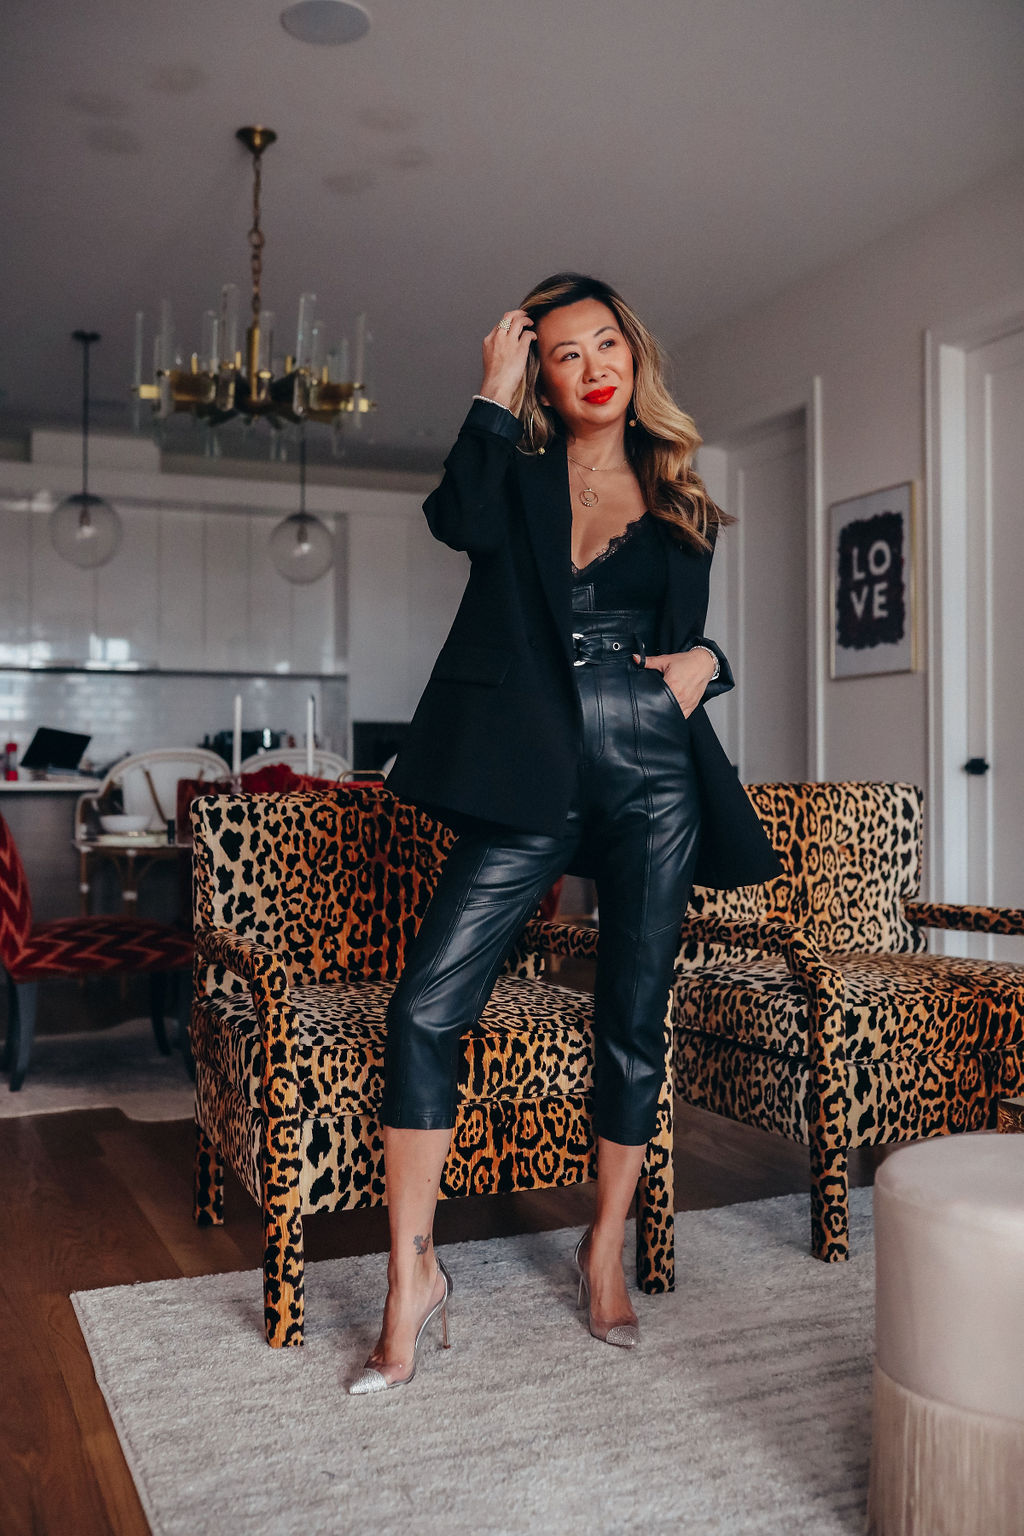 Anniston leather pants, corporate fashion to full-time blogging, how to get a career blogging, how to start a blogging career, blogging as a job, blogging to make money, career advise, women career advice, women's fashion industry careers, influencer careers, influencer advice, how to make money as an influencer, full time blogging, full time influencer, full time work as a blogger, how to work full time as a blogger, Red Soles and Red Wine, Jennifer Worman, career advice for women, job interview advice, switching careers advice, switching jobs advice, job advice for women, Lagos jewelry, LagosCaviar Gold Double Circle Pendant Necklace, LagosCaviar Gold Ball Beaded Necklace, LagosCaviar Gold Hoop Earrings, LagosCaviar Icon Semiprecious Stone Bracelet, LagosCaviar Color Semiprecious Stone Bracelet